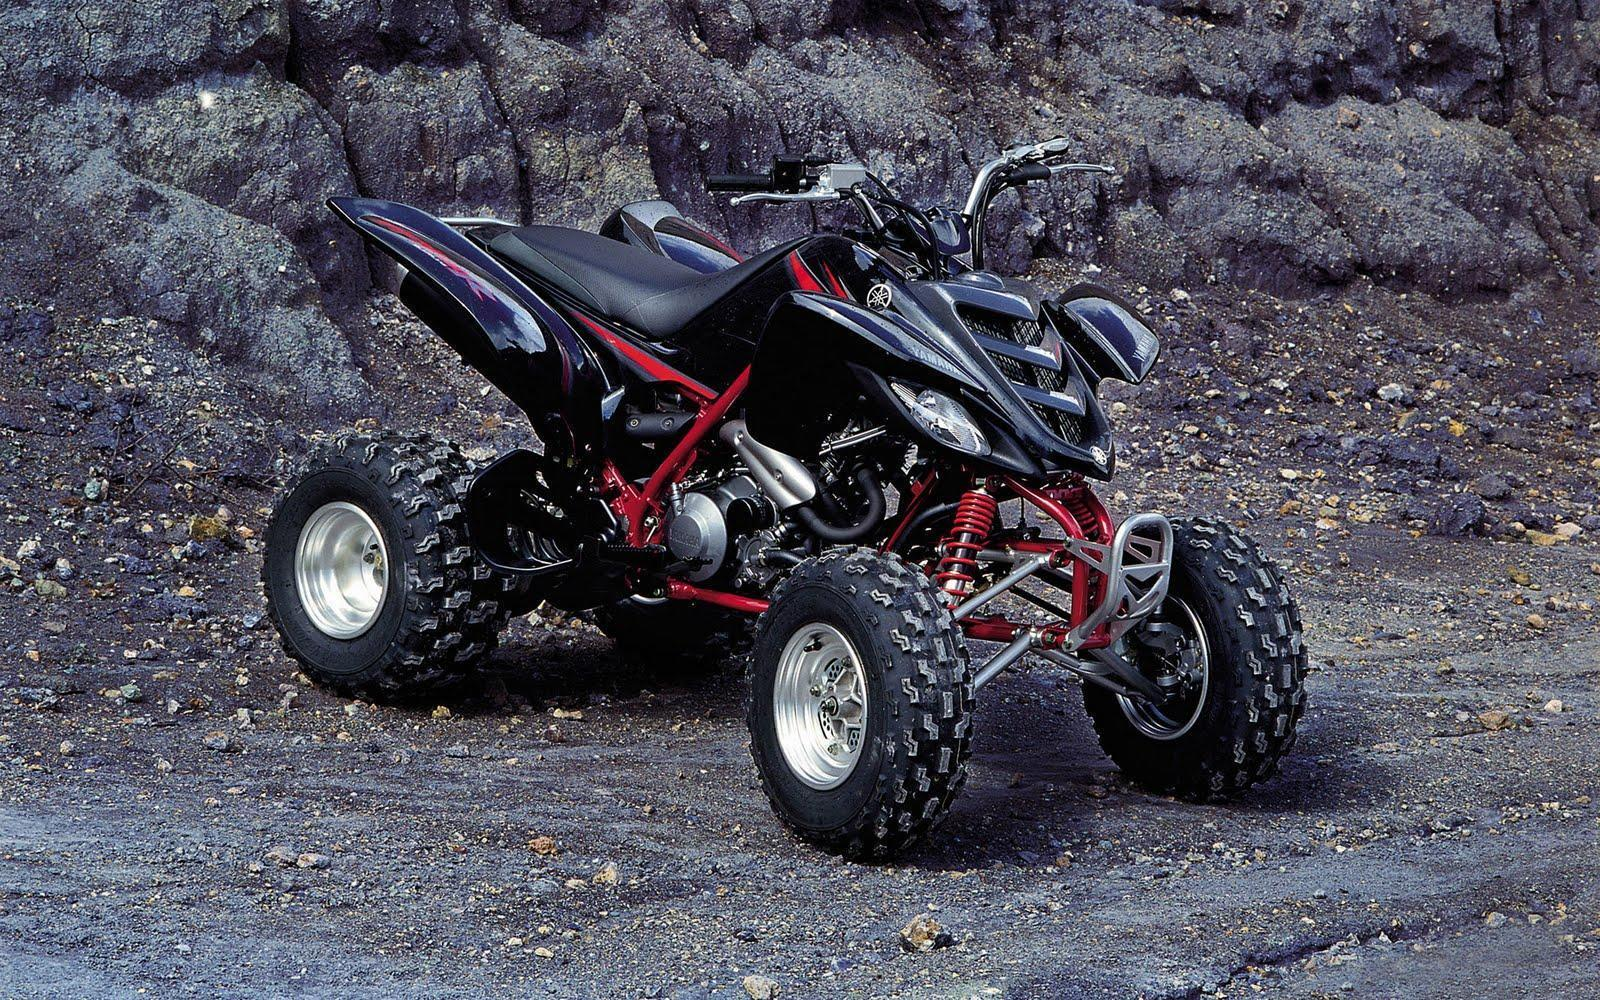 Yamaha ATV Wallpaper - WallpaperSafari